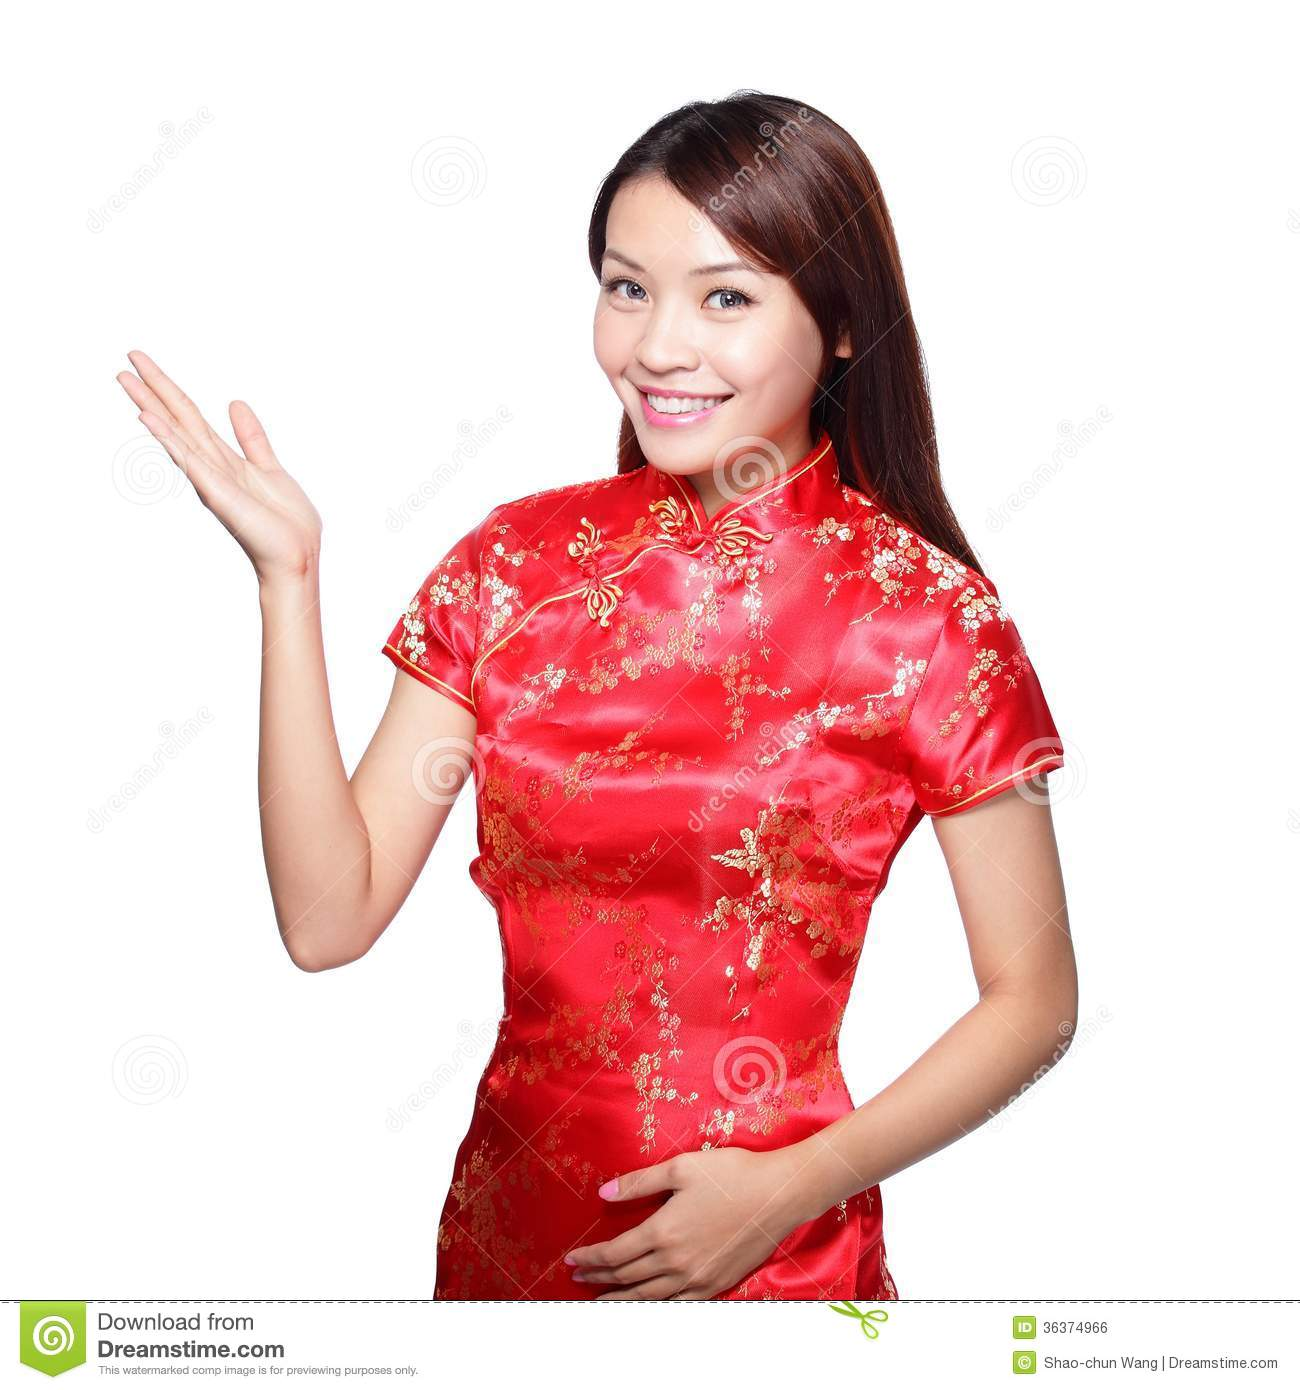 Happy Chinese New Year Royalty Free Stock Image  Image: 36374966